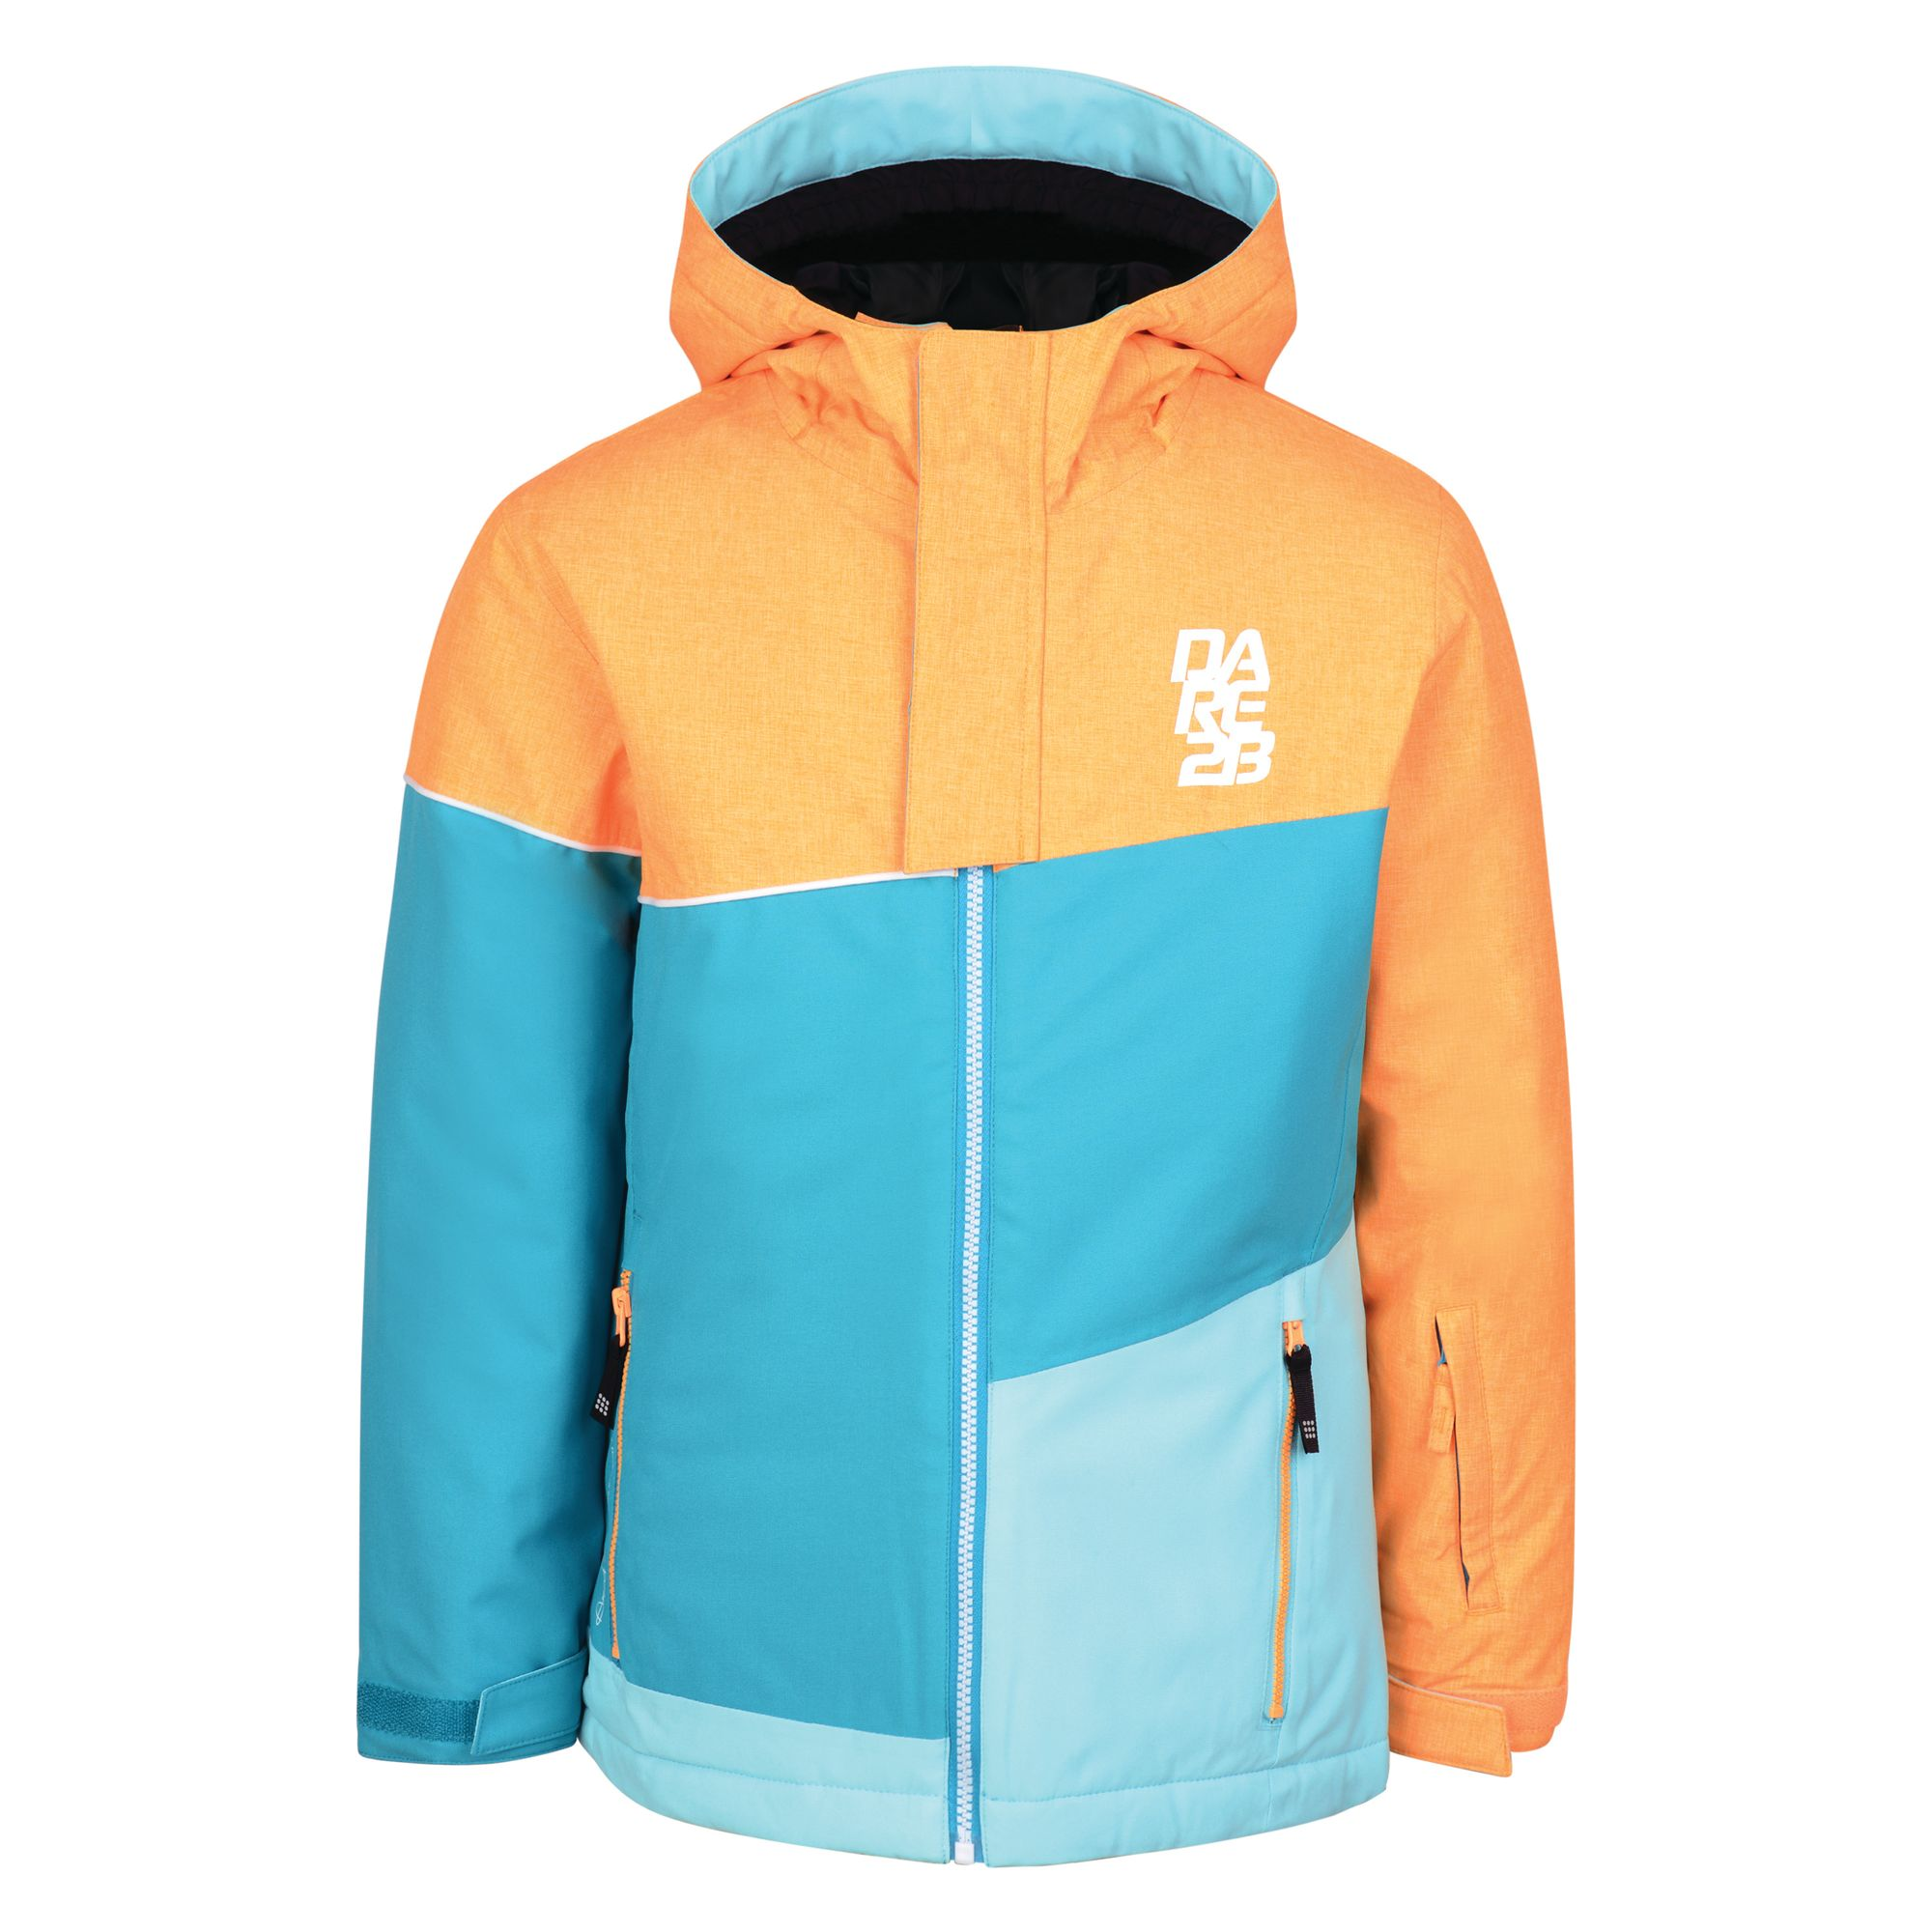 Dare 2b Obtain Men/'s Waterproof Breathable Insulated Skiing Jacket